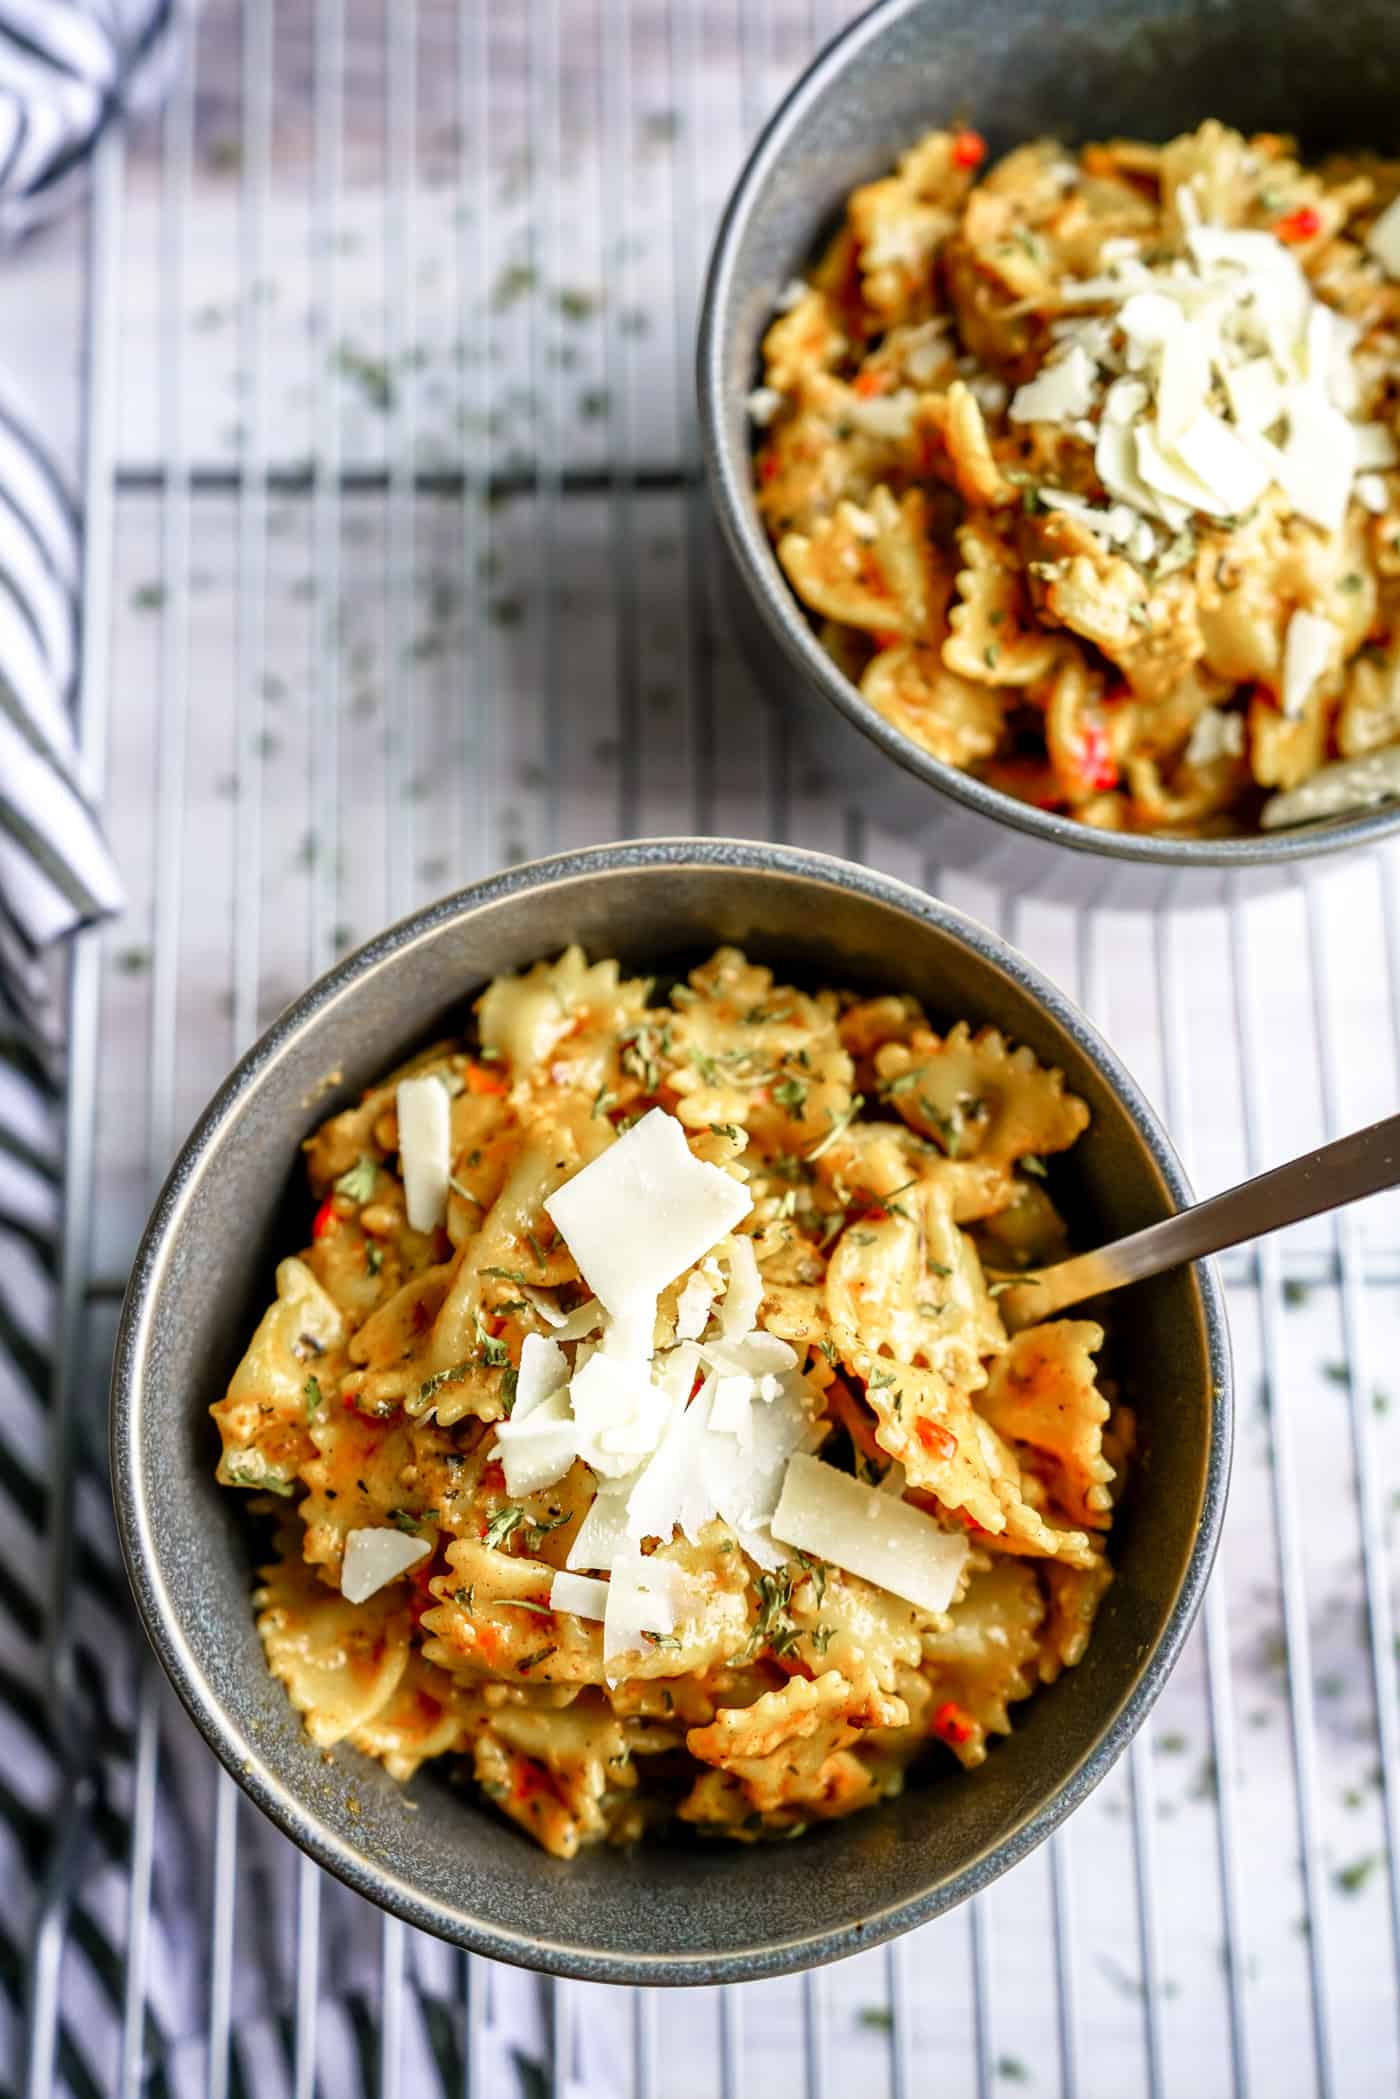 Need a quick and easy dinner tonight everyone in your house will love? Look no further than this Instant Pot Cajun Pasta with sausage! Packed with flavor, creamy sauce and delicious sausage.